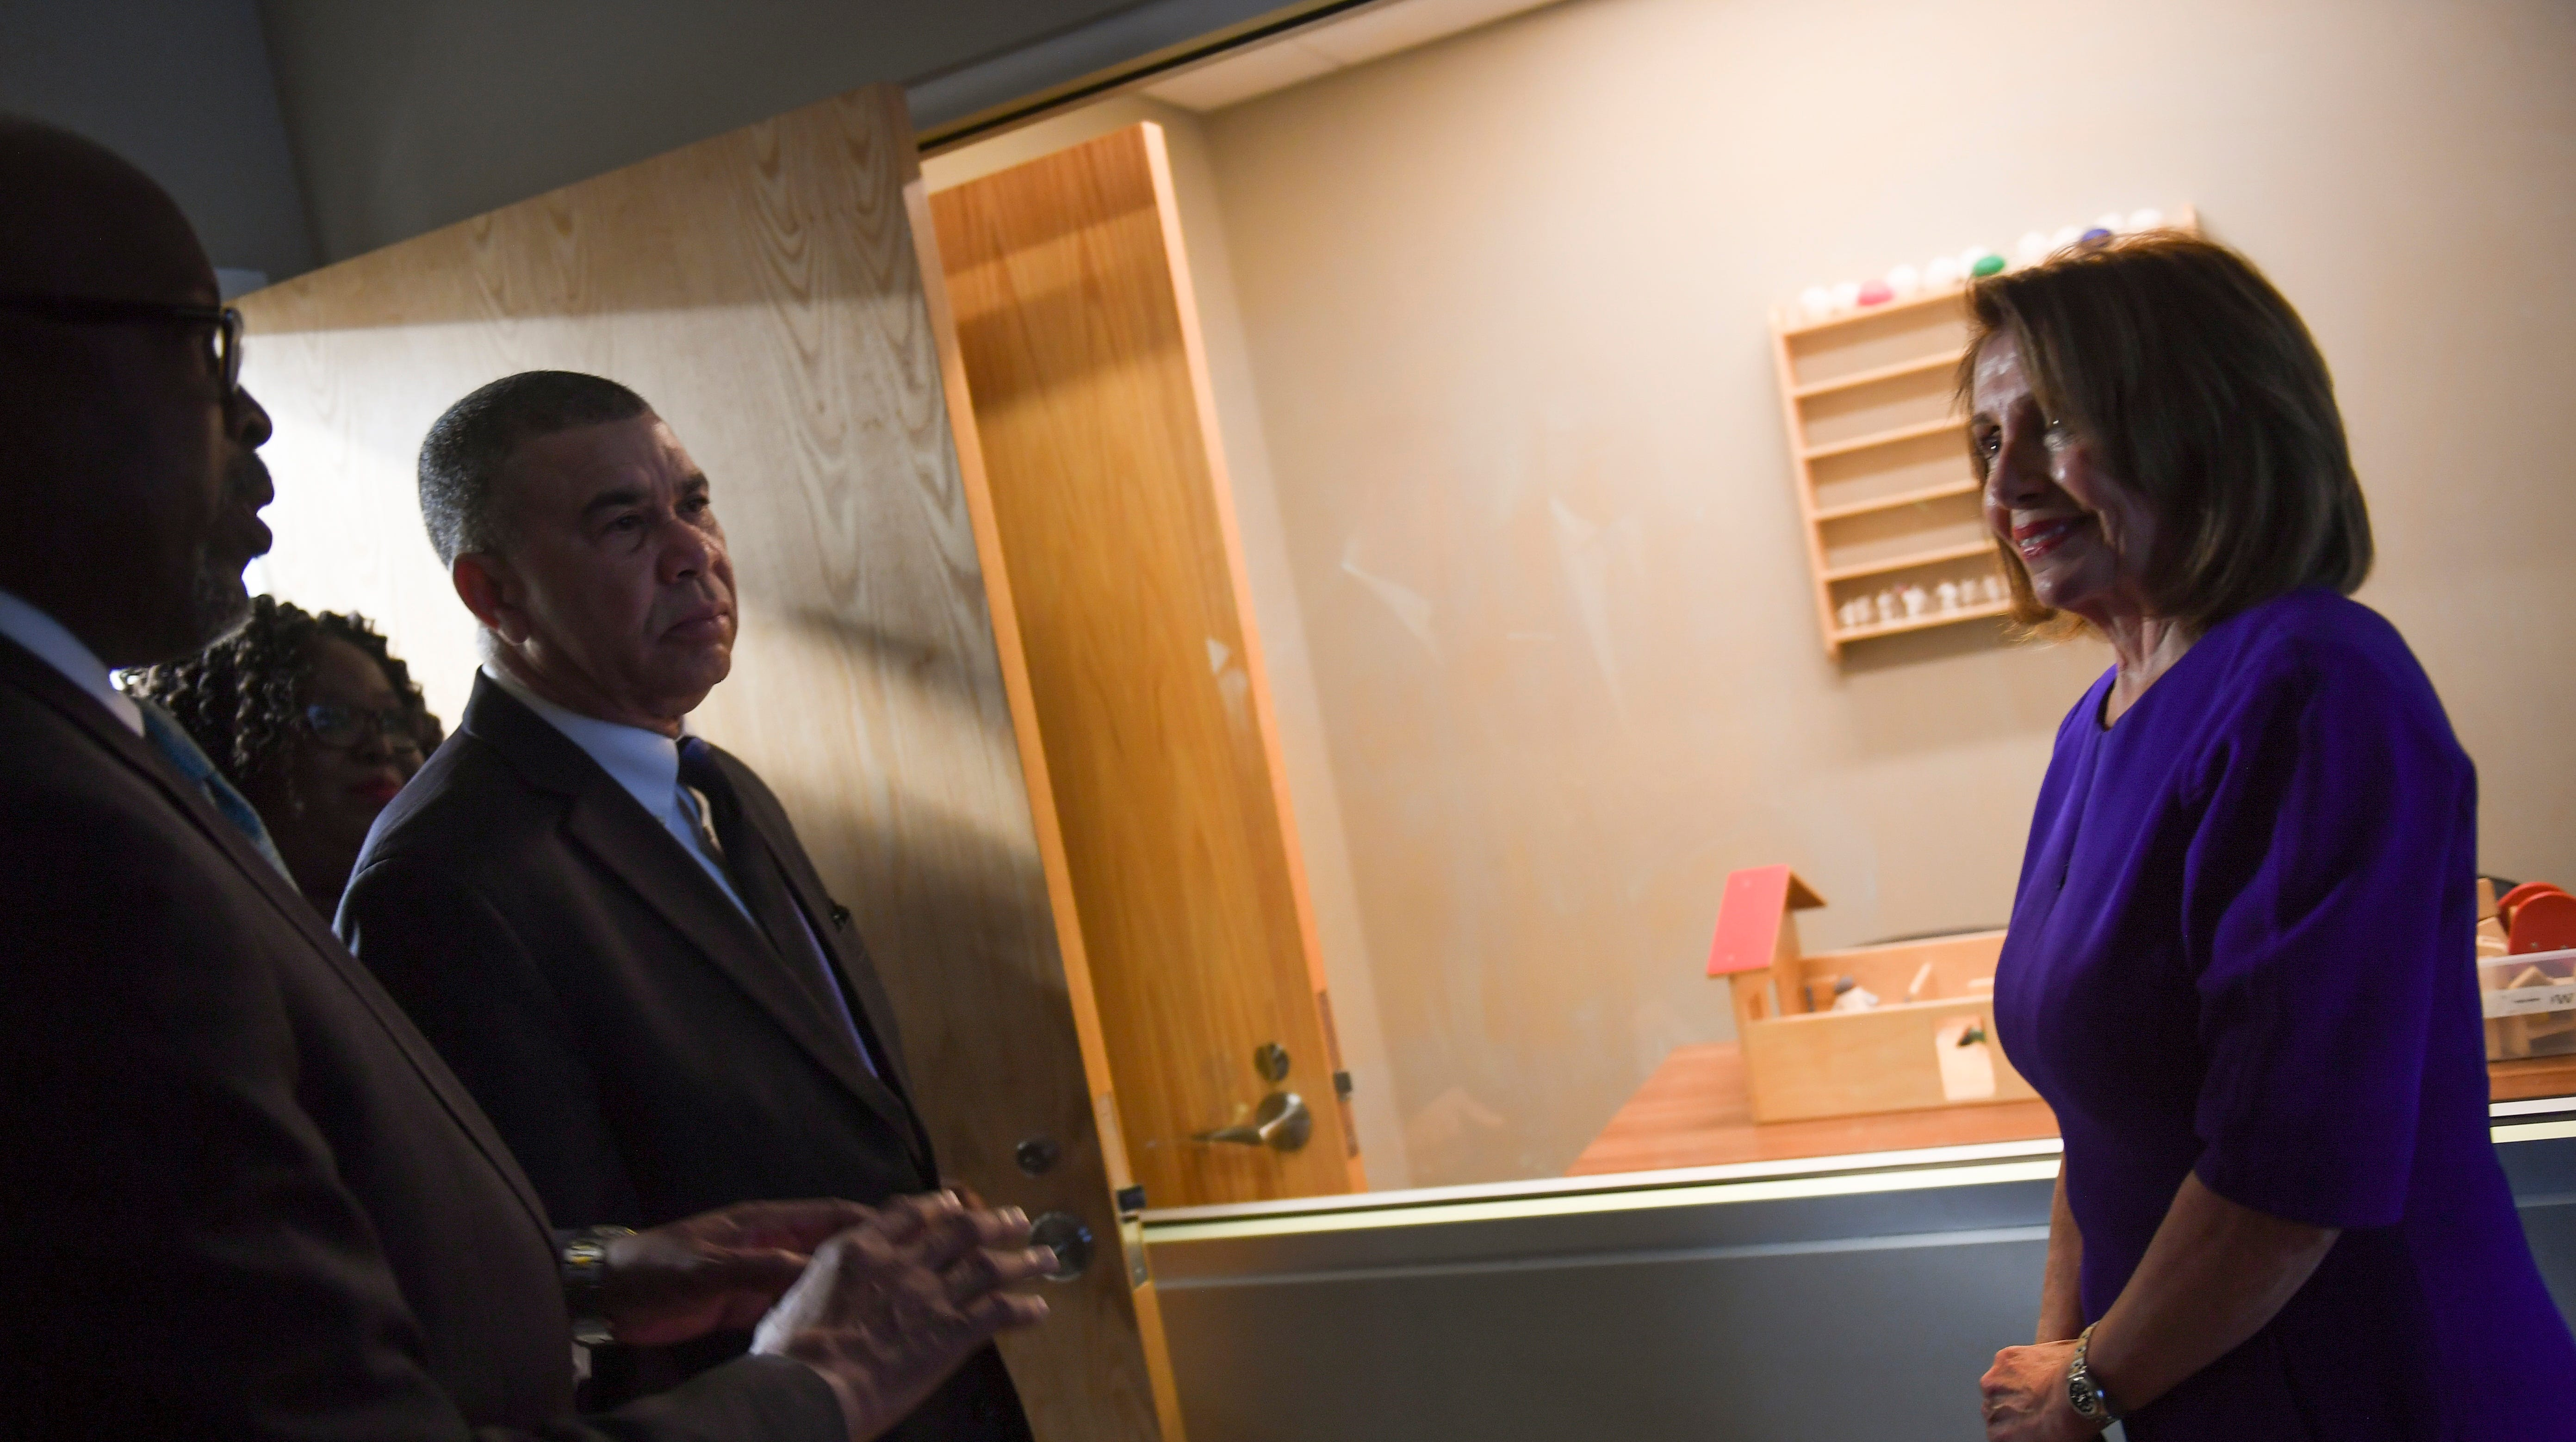 Dwayne Butler (left), president and CEO of the Betty Jean Kerr People's Health Centers, shows Rep. William Lacy Clay (center), D-Mo., and Speaker of the House Nancy Pelosi, during a tour of the of the Lacy Clay Center for Children's Health. Pelosi will have to lead Democrats in a strategy on how to deal with the fallout of the Mueller report.